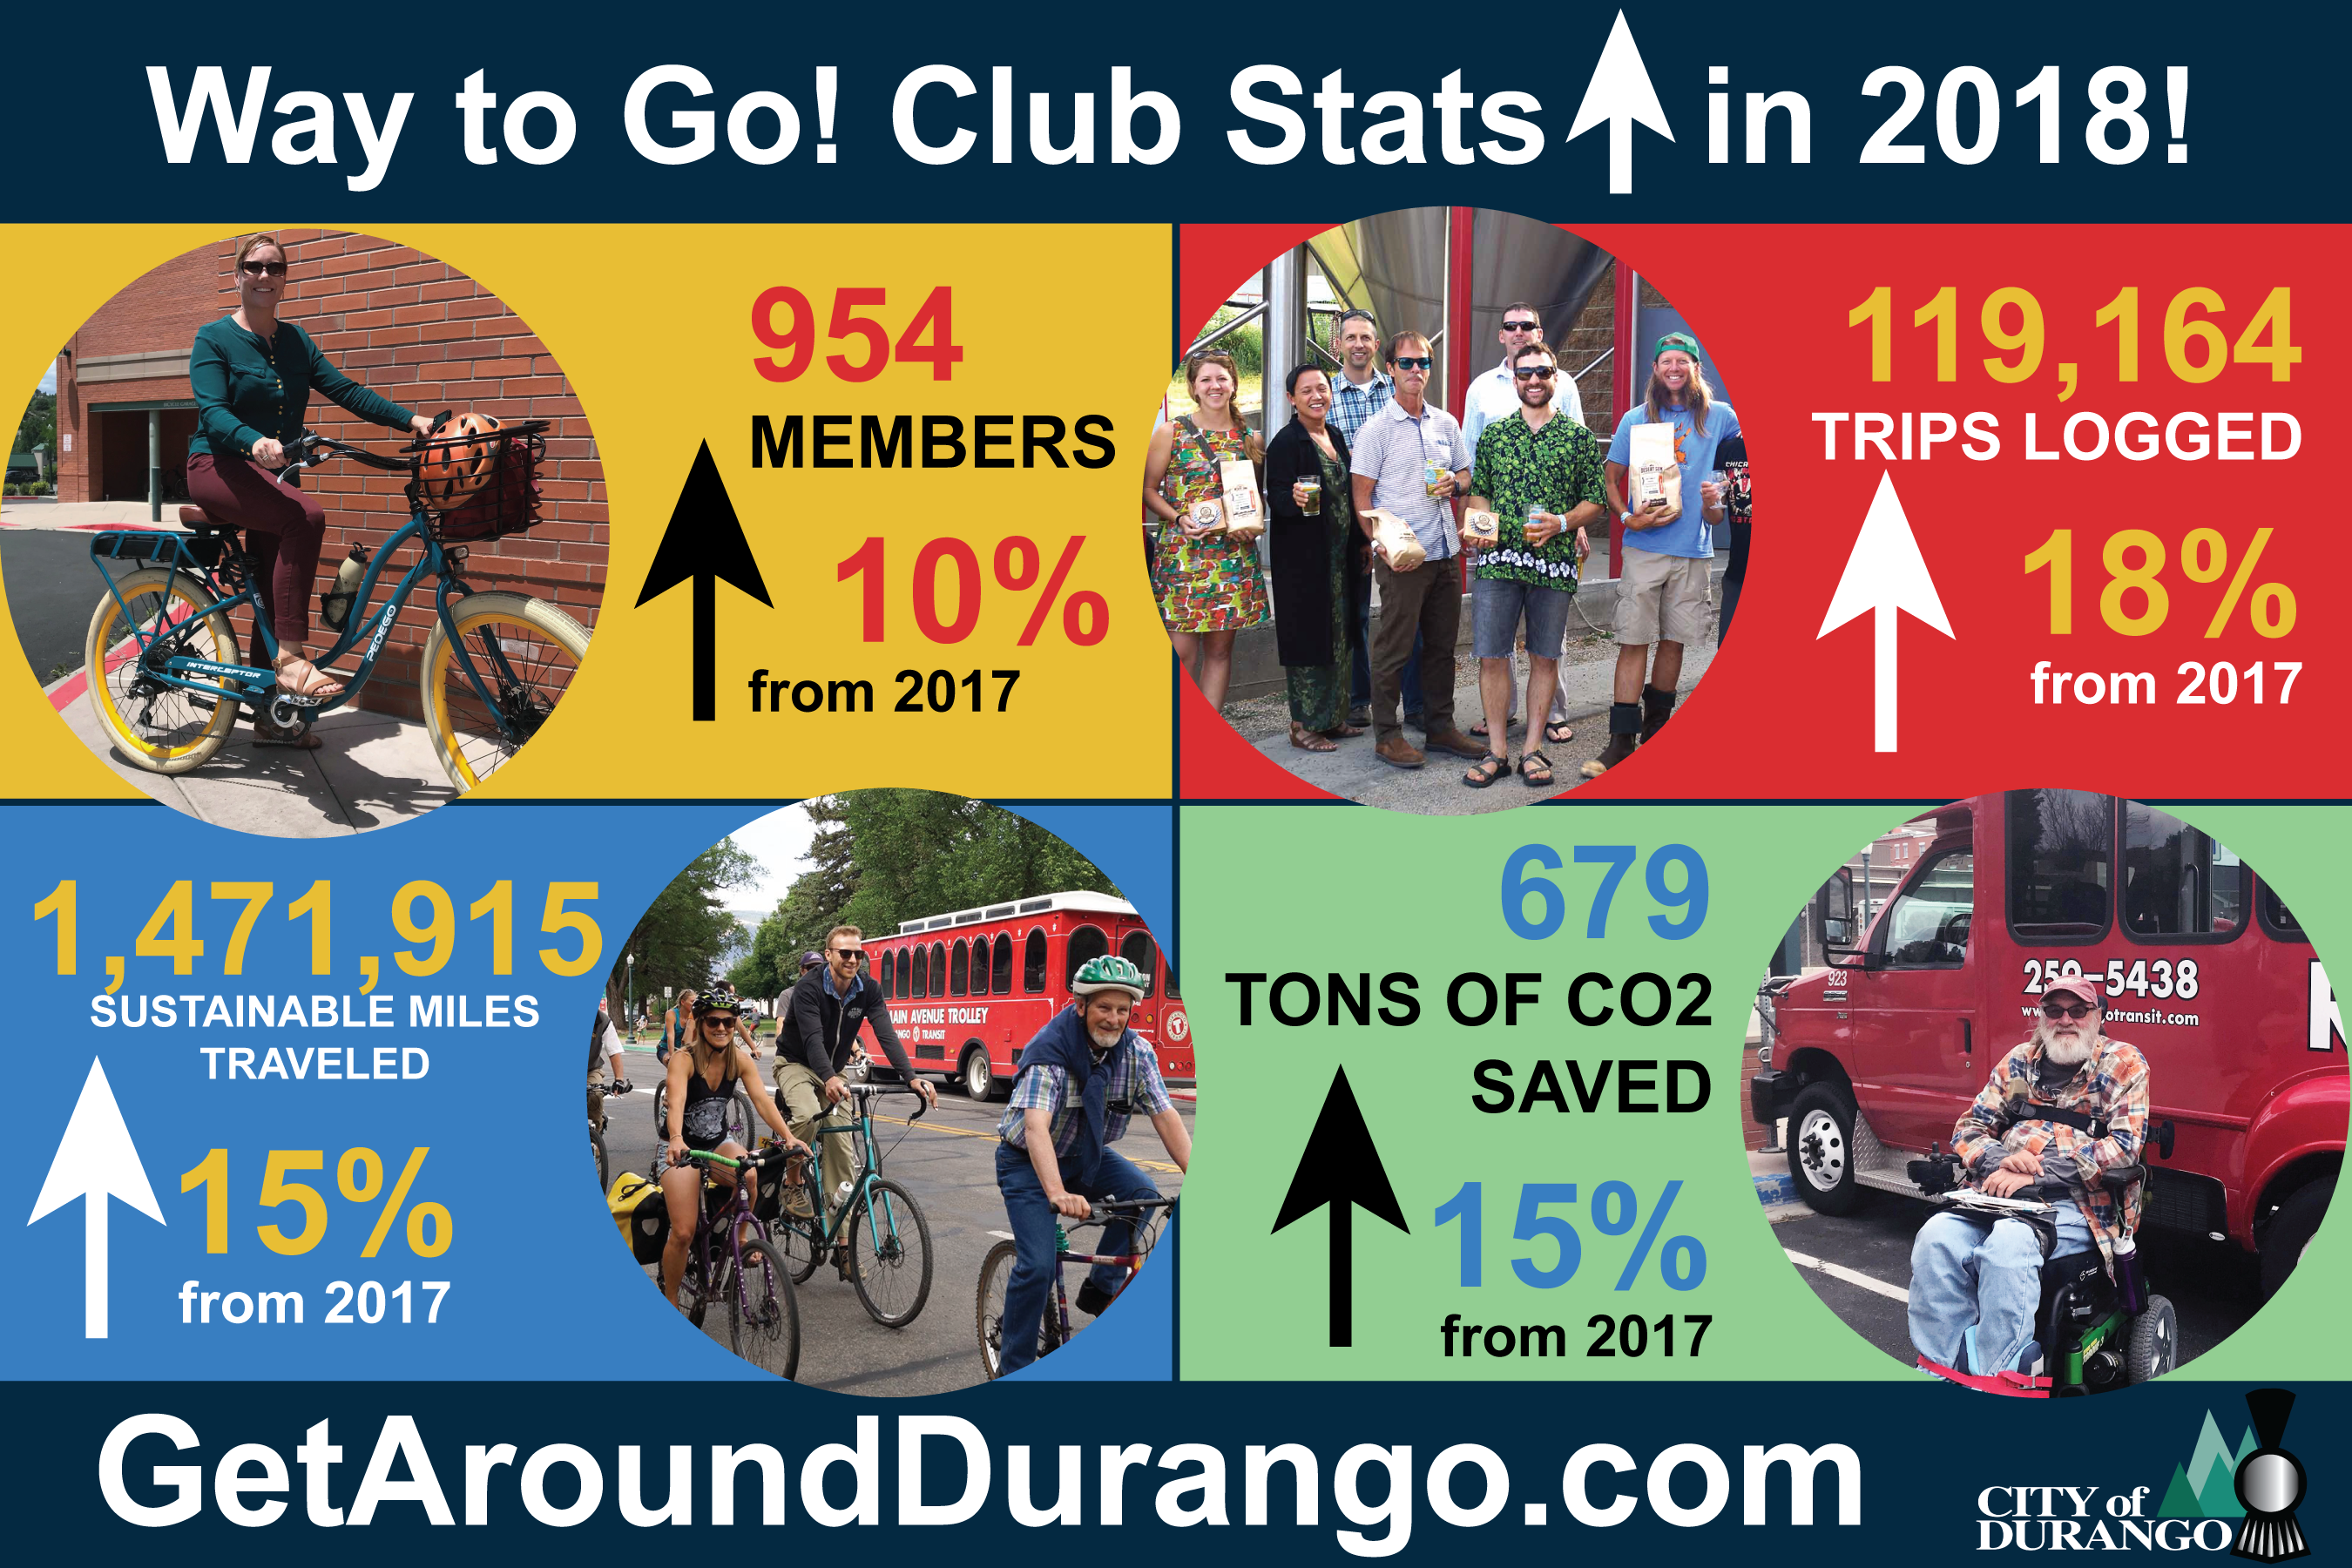 Way to Go! Club up in 2018